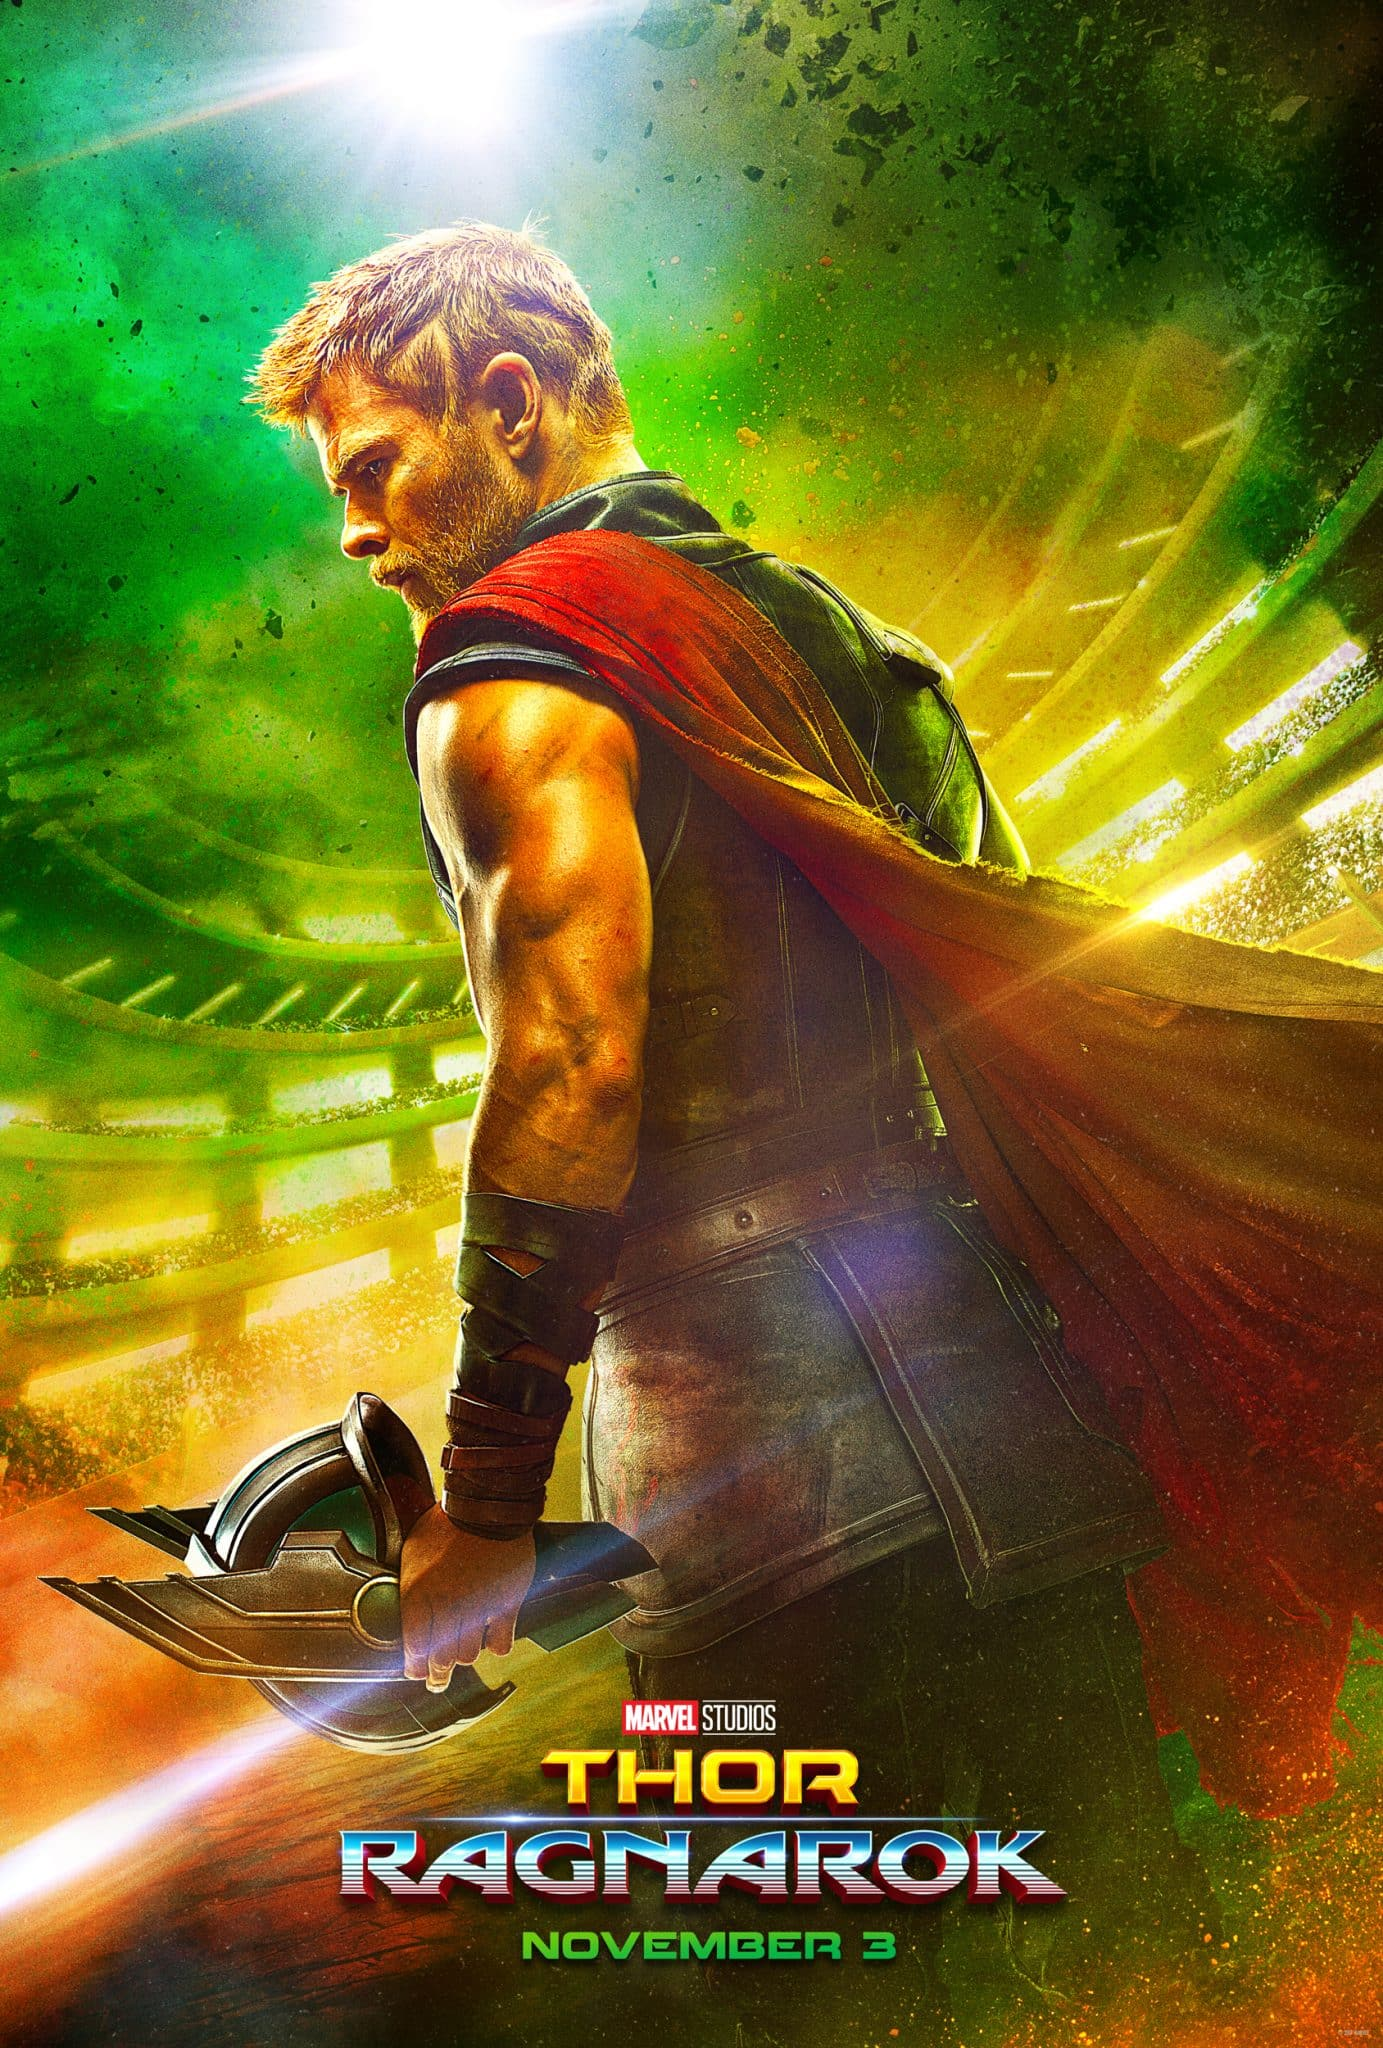 Marvel Studios' THOR: RAGNAROK - New Teaser Trailer & Poster Now Available! #ThorRagnarok